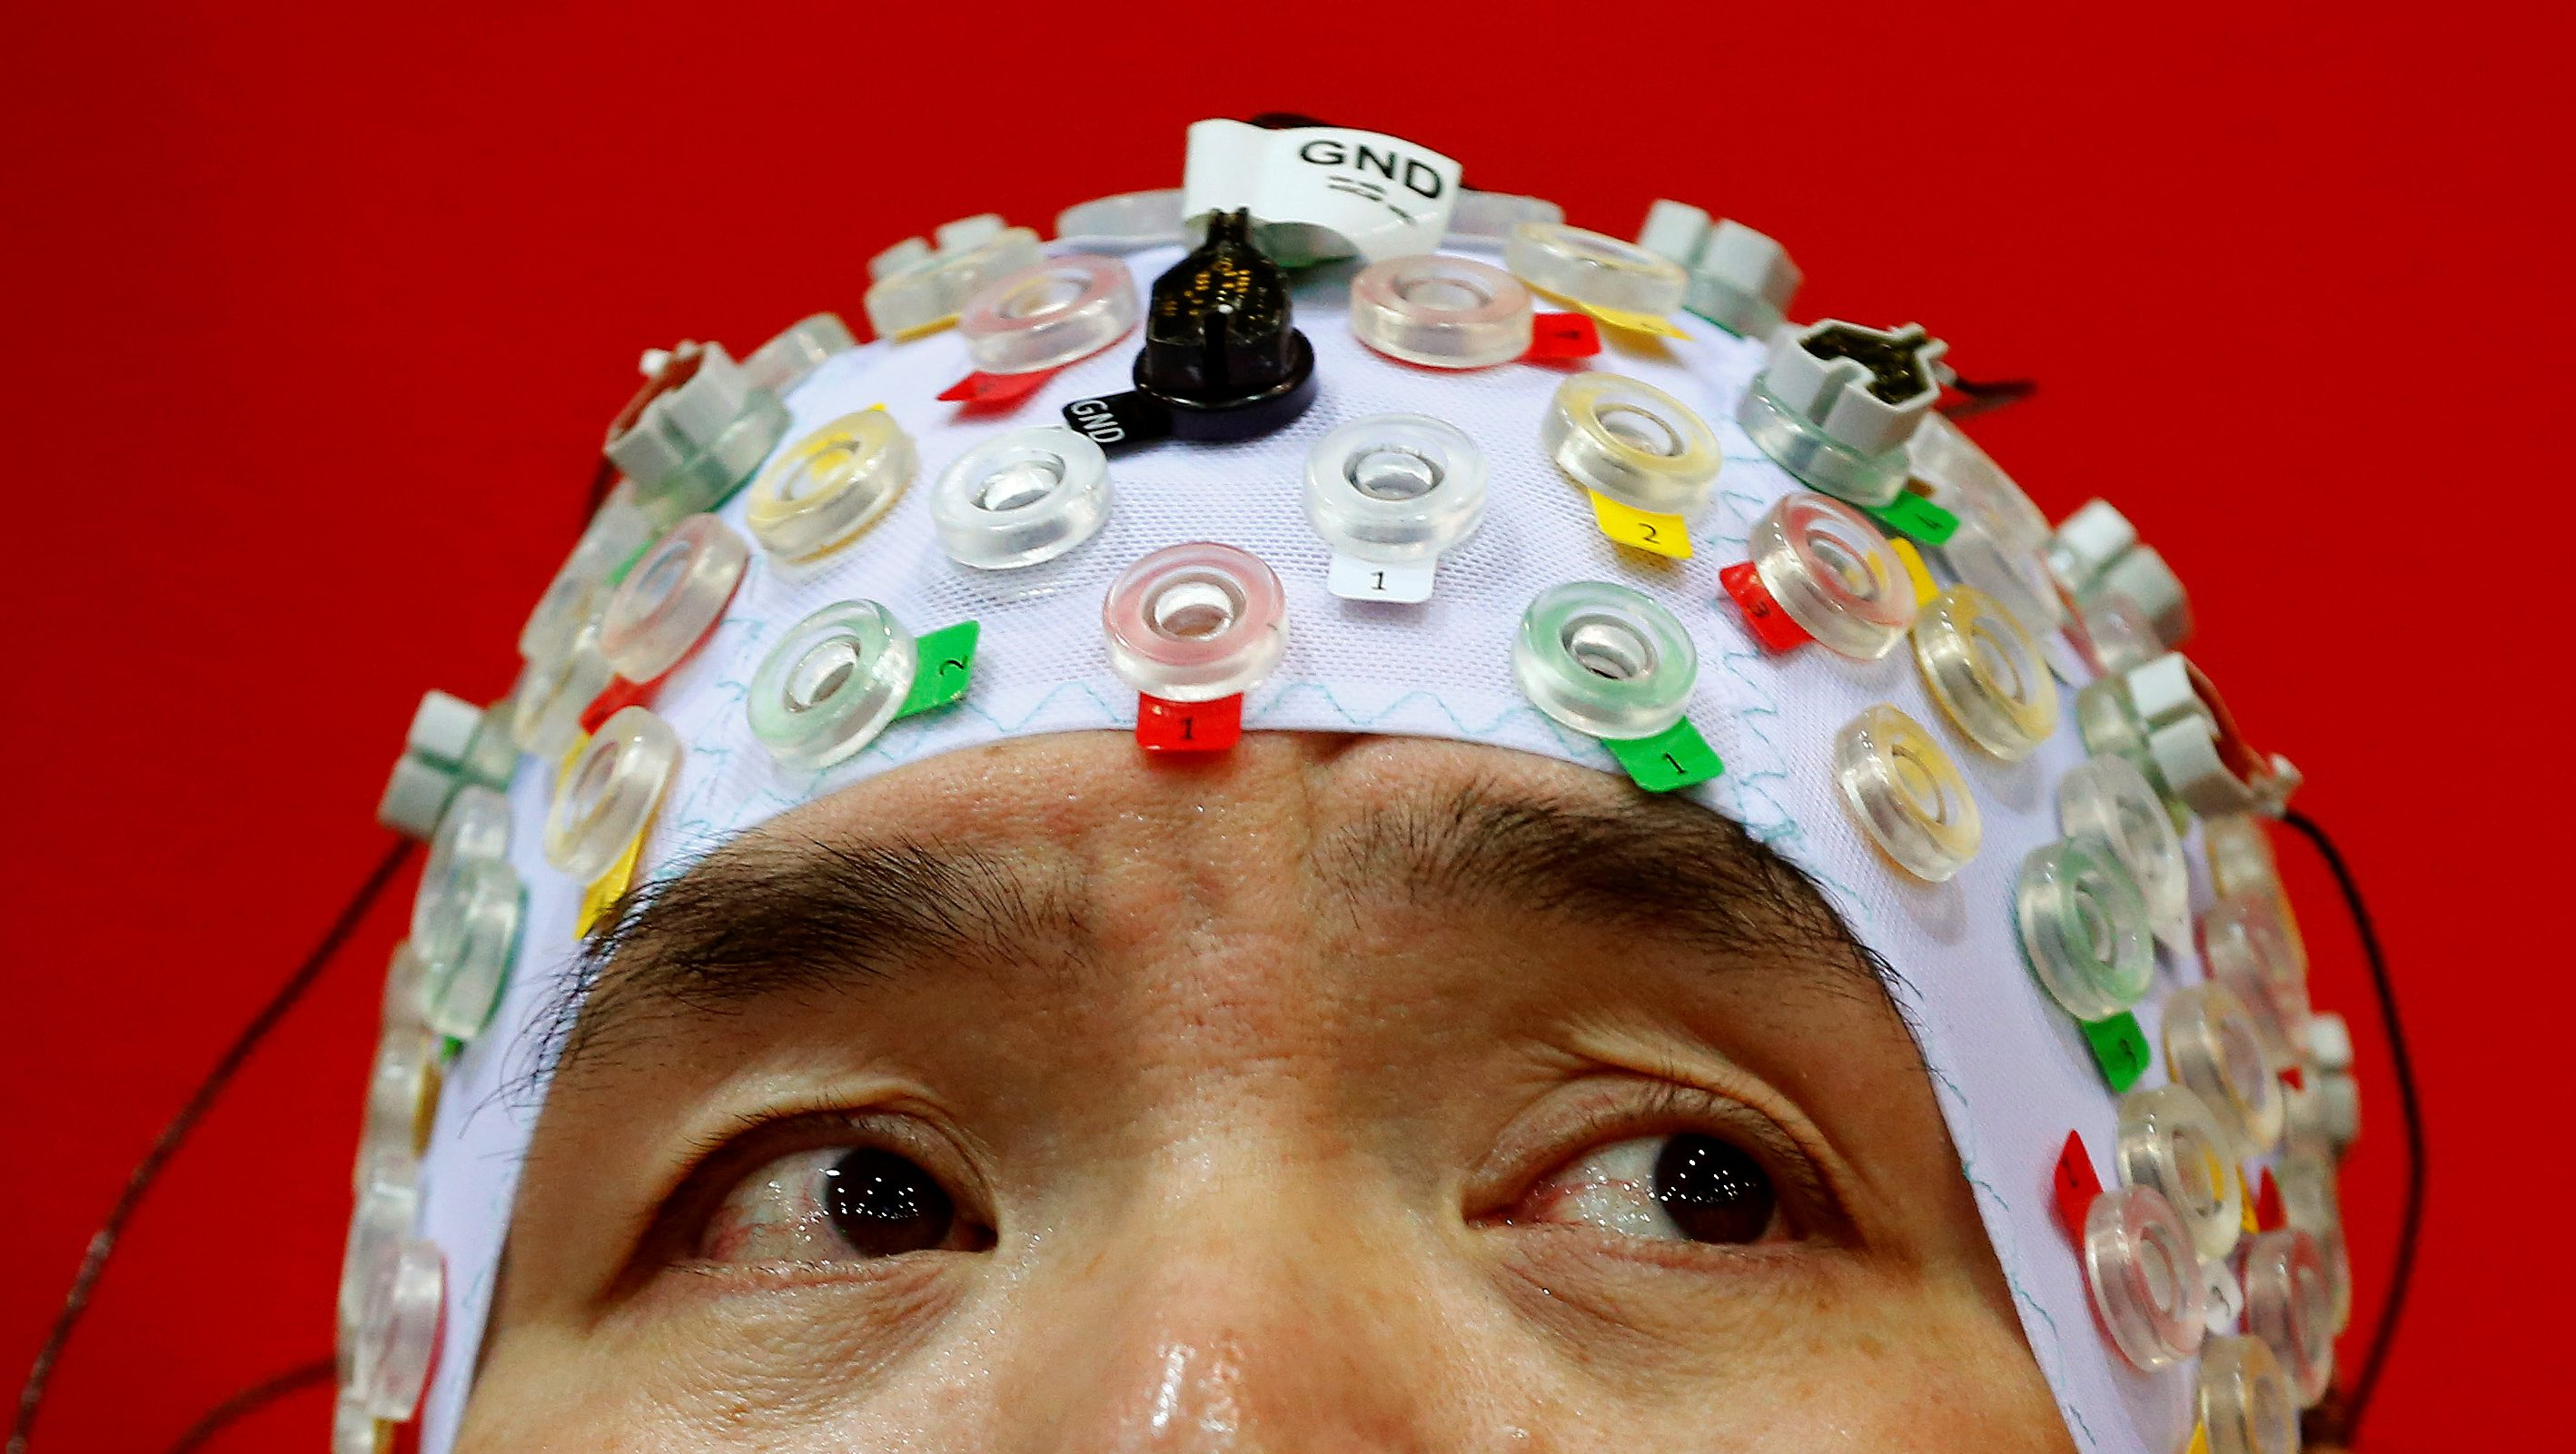 Hong Gi Kim of South Korea competes during the Brain-Computer Interface Race (BCI) at the Cybathlon Championships in Kloten, Switzerland October 8, 2016.